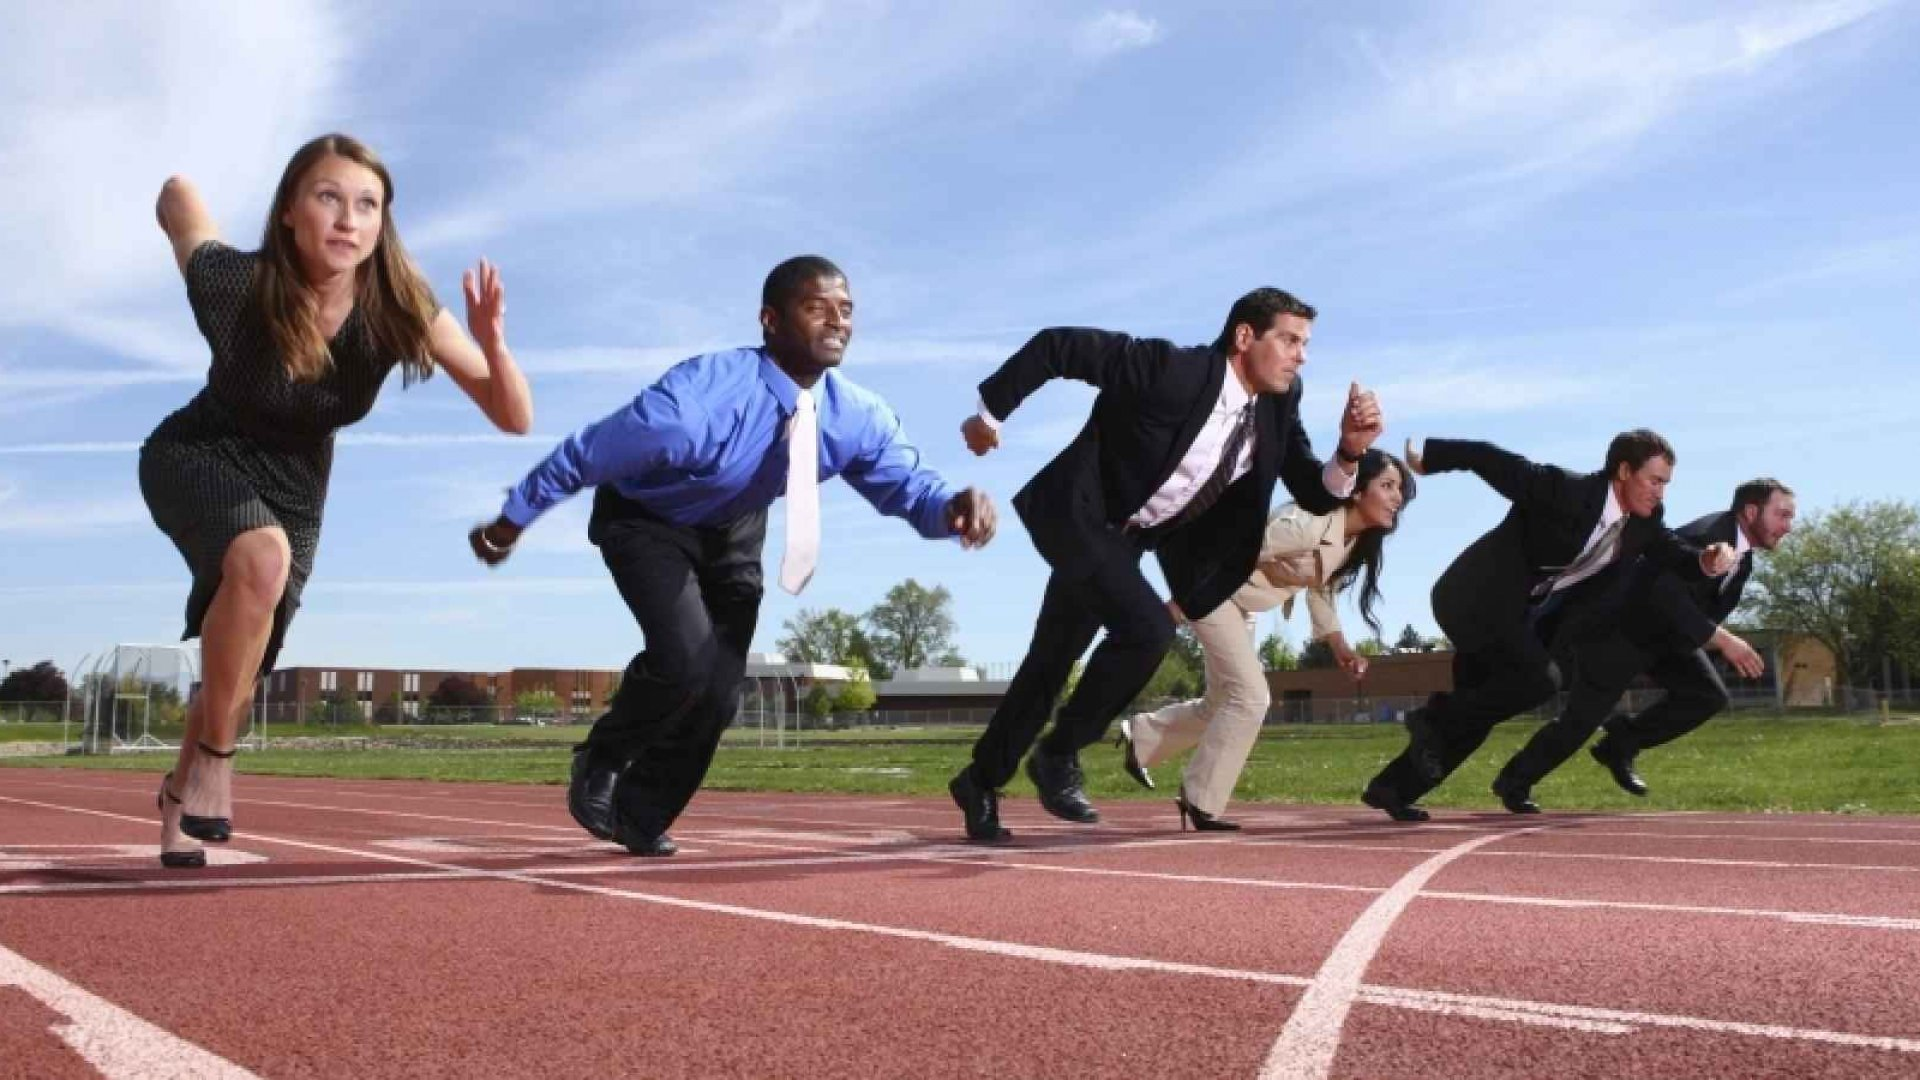 How to Cultivate Innovation Through Competition